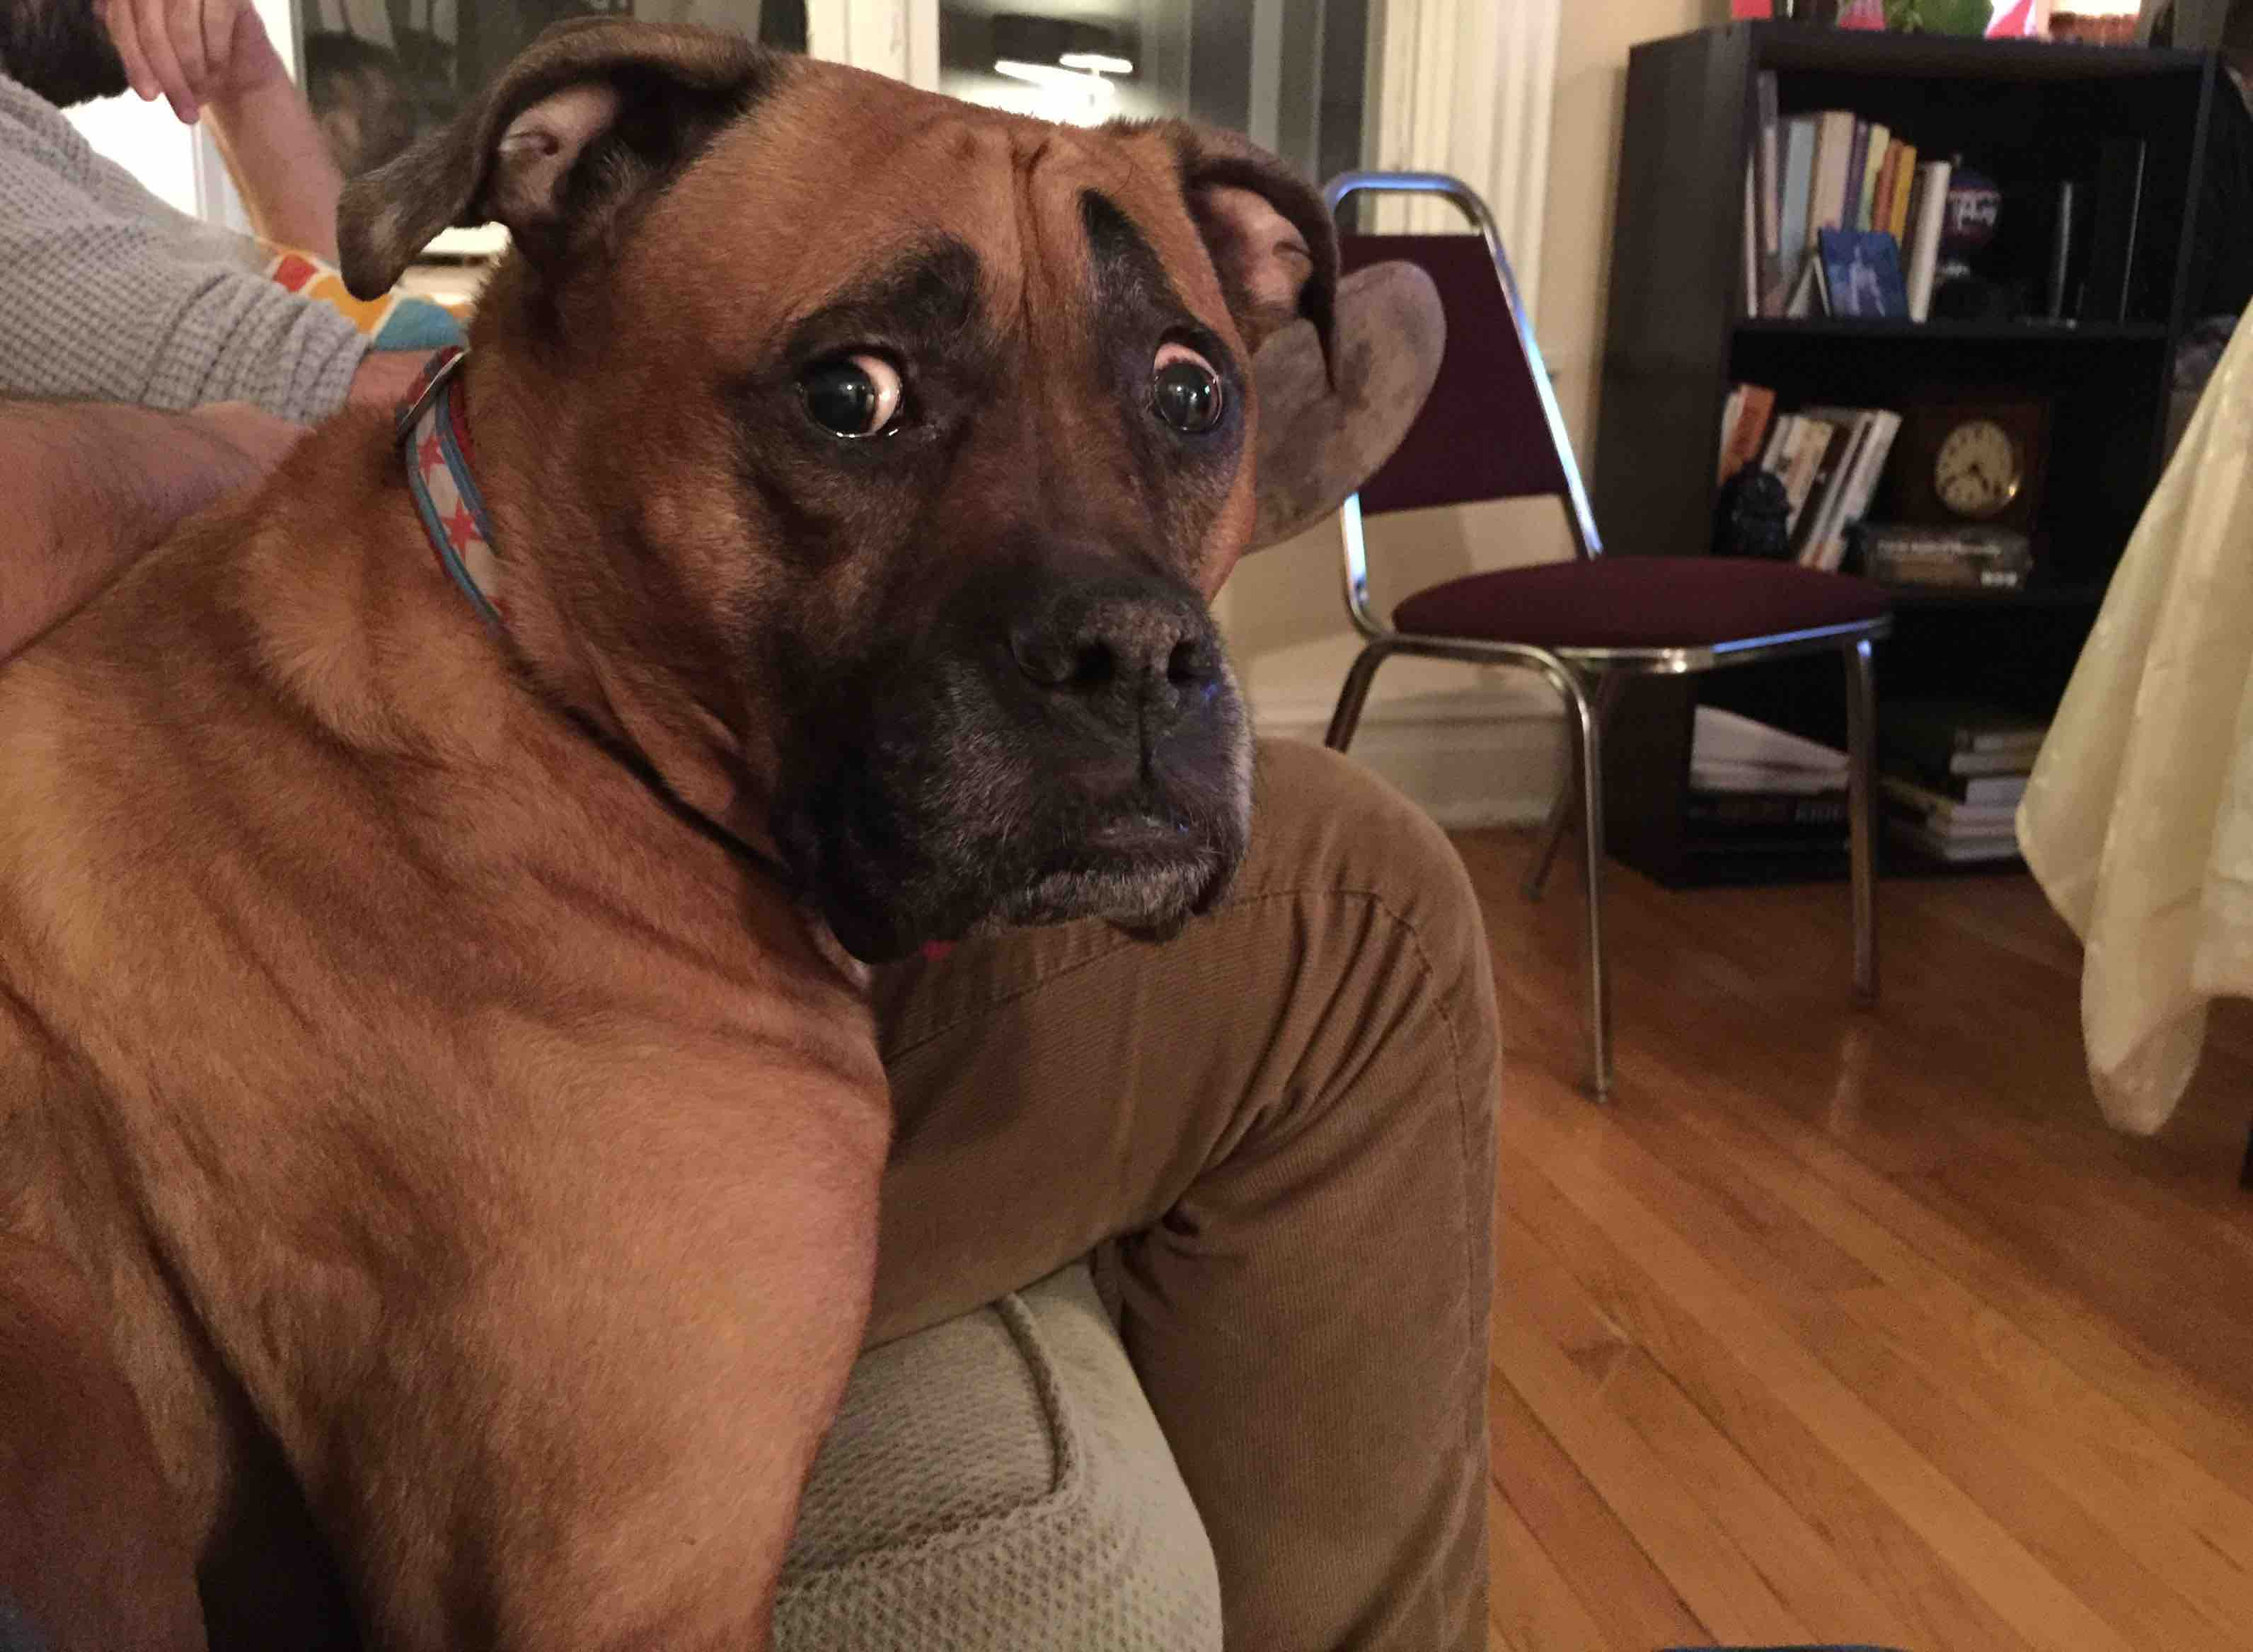 My friend's dog is always concerned about everything : aww